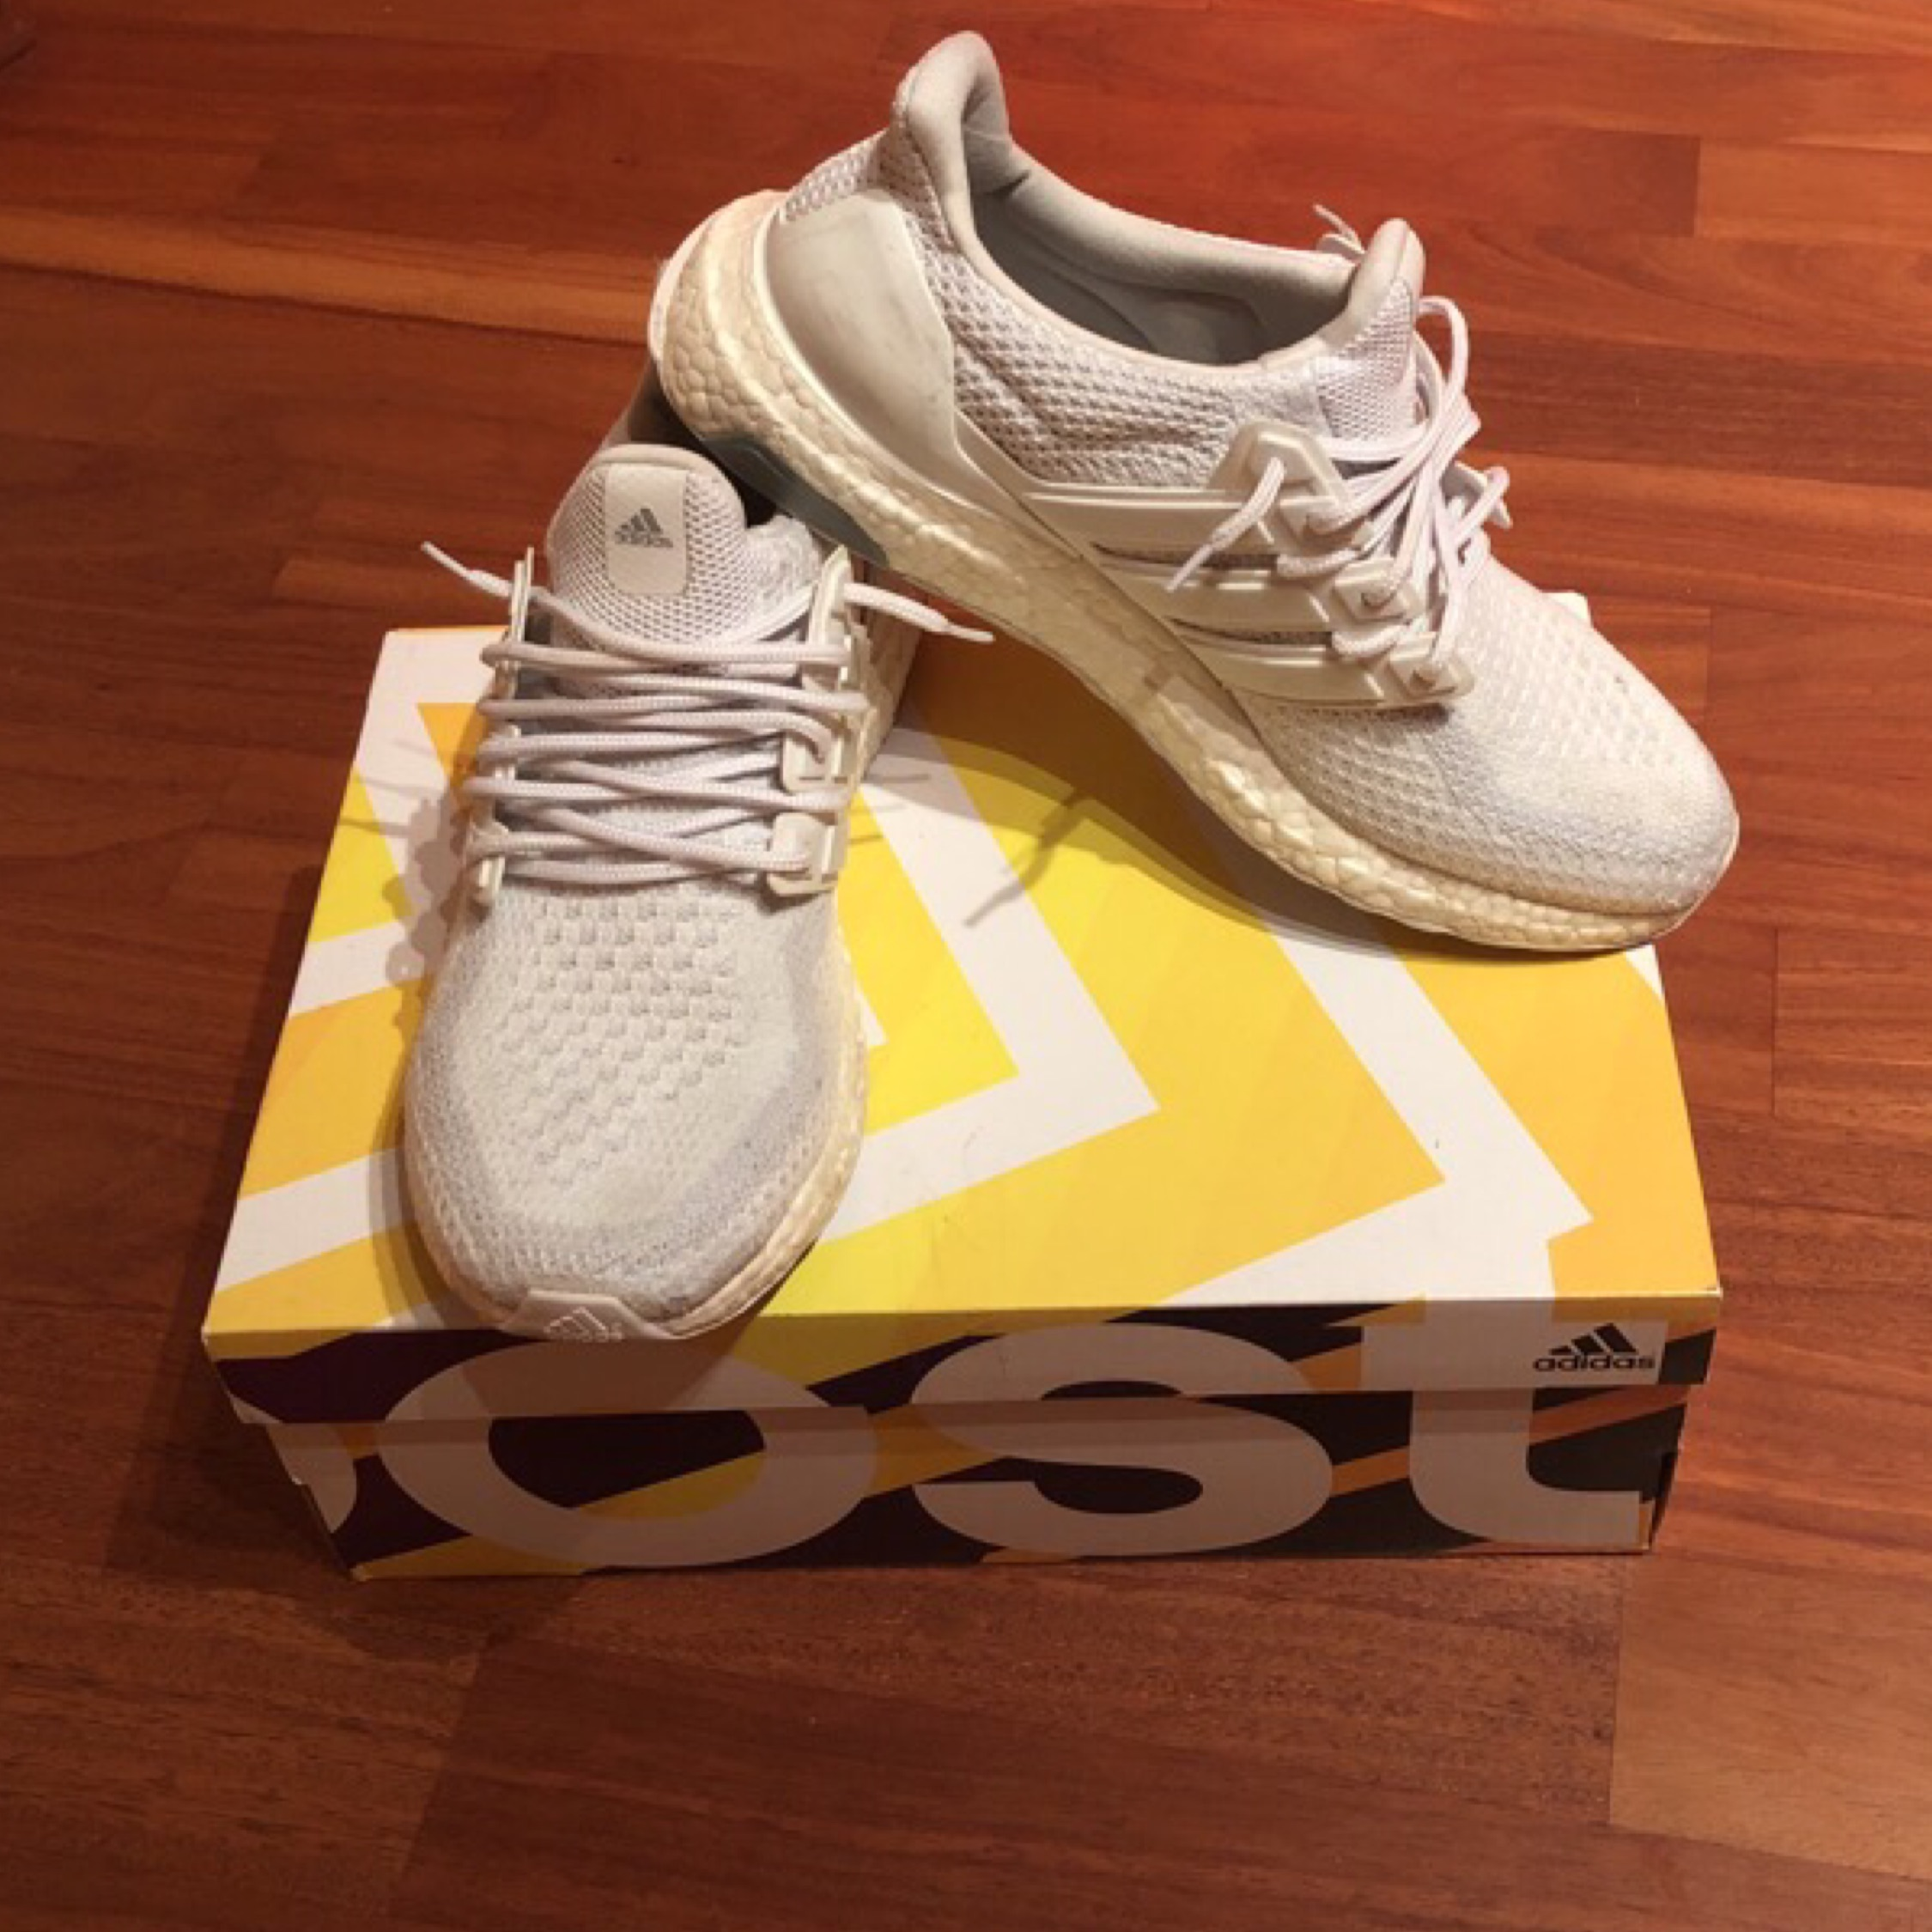 save off 831c9 31d75 Ultra Boost Triple White 2.0 Yeezy Nmd Gucci Lv